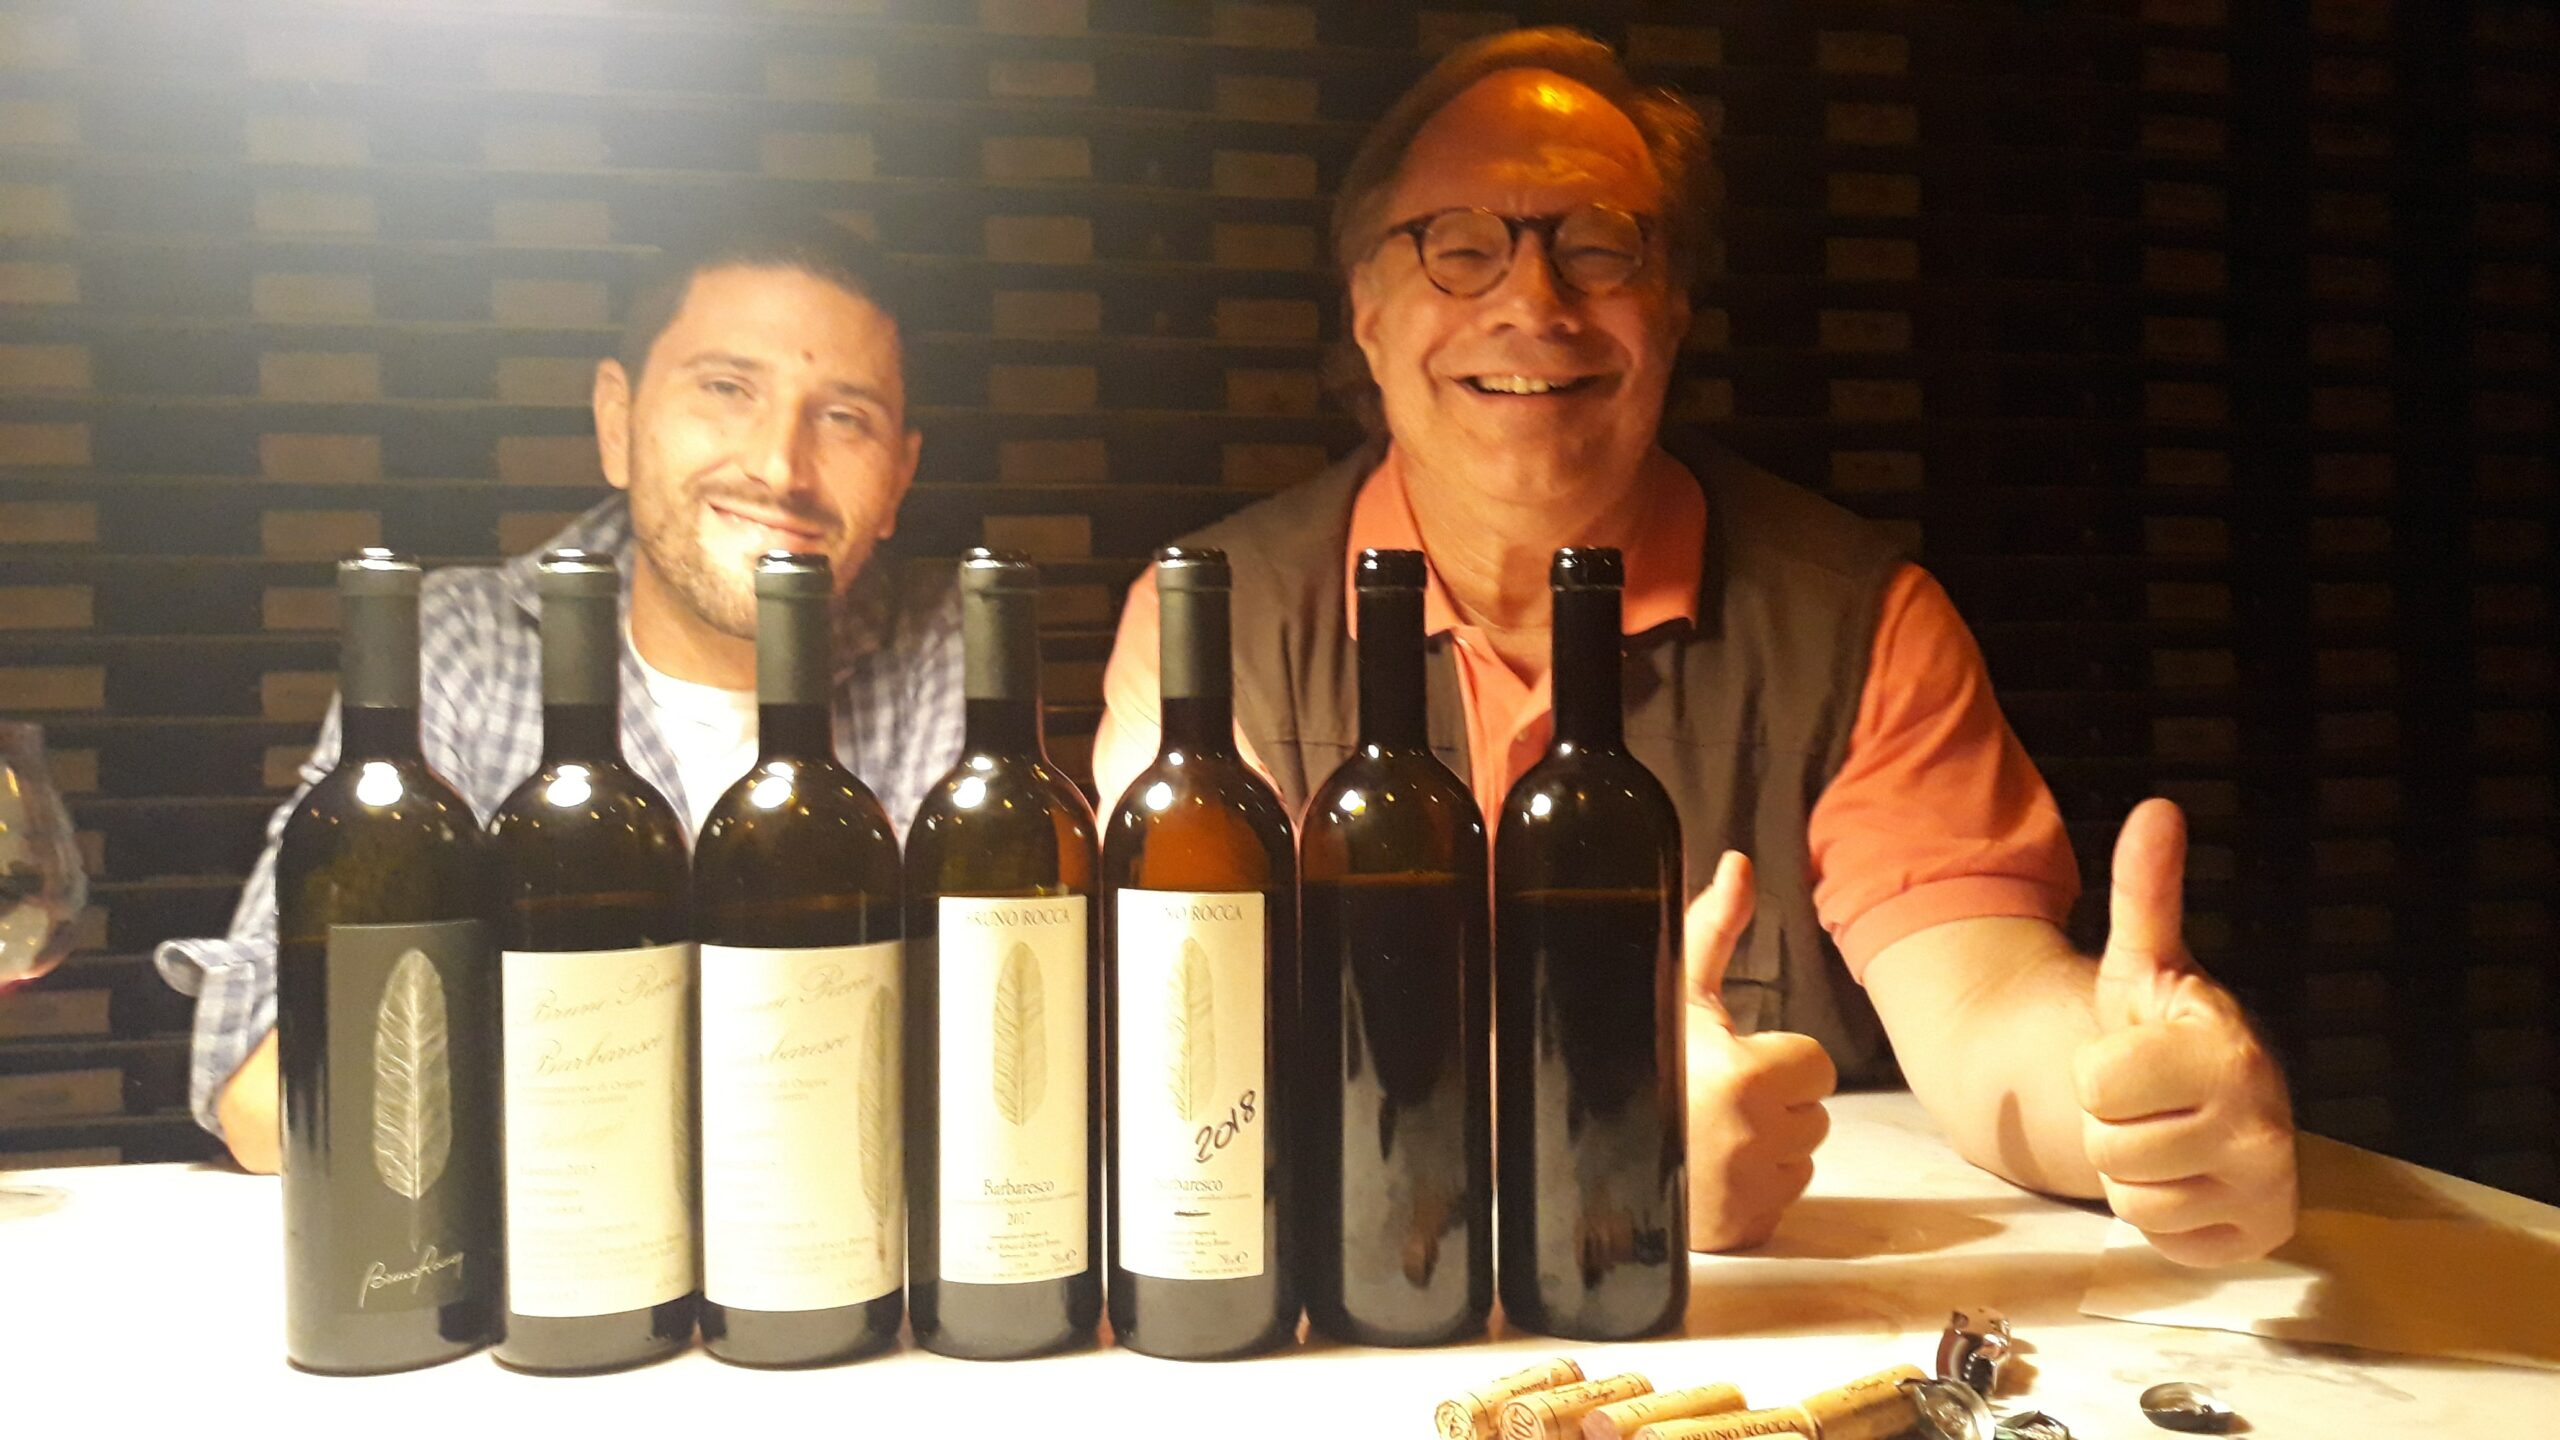 Tasting-at-Bruno-Rocca-revealed-many-great-wines-in-2020-and-one-the-Barbaresco-Riserva-Currà-that-was-one-of-the-years-best-min-scaled-1-2-1-1-1-1-1